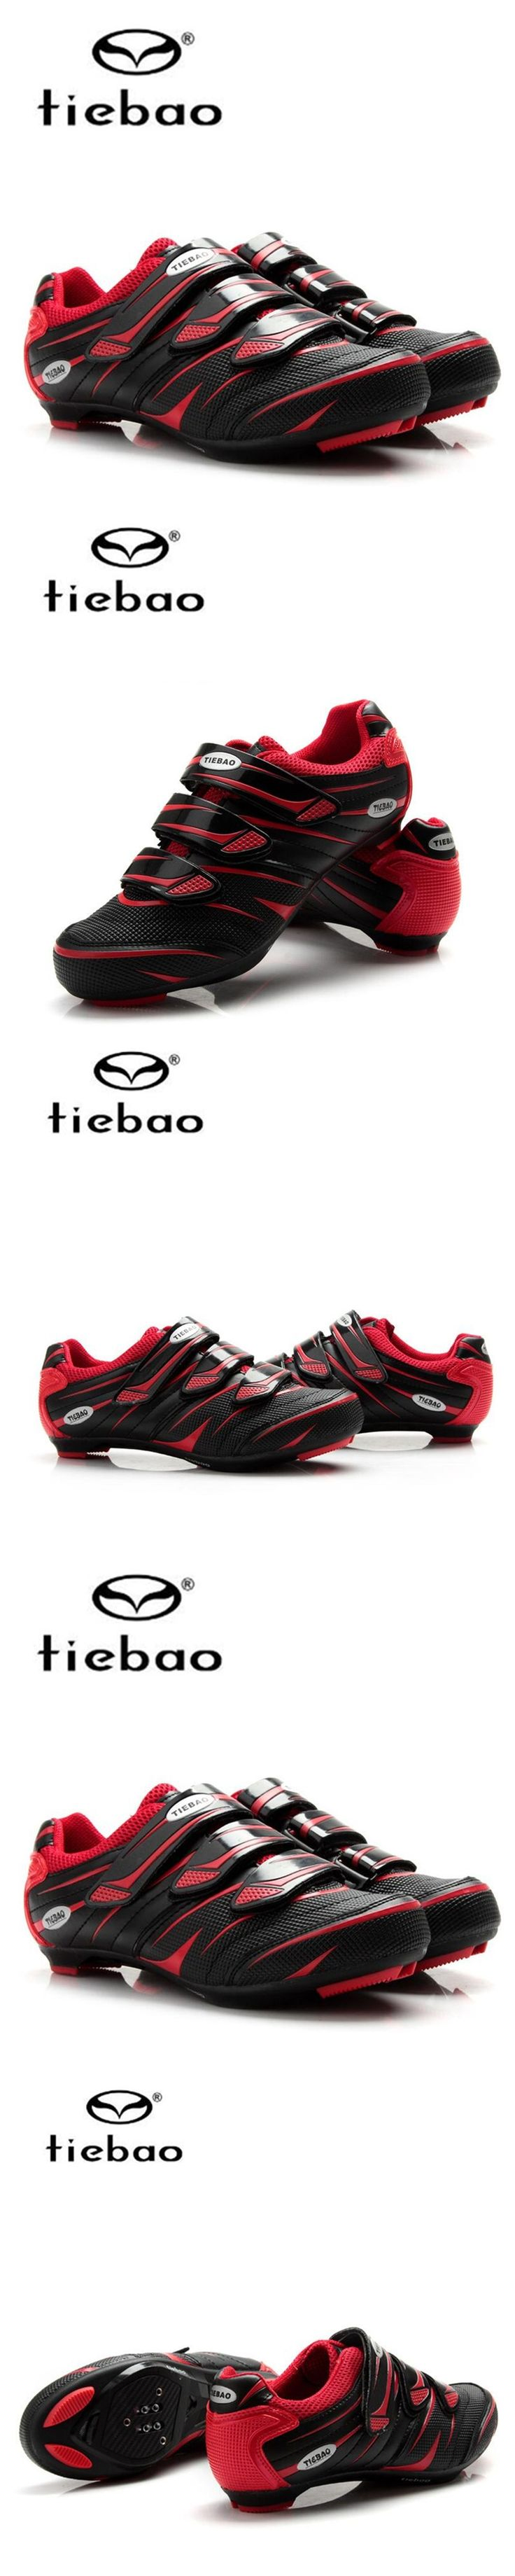 TIEBAO Cycling Shoes 2017 road superstar bicycle bike shoes zapatillas deportivas mujer sapatilha ciclismo sneakers women hombre